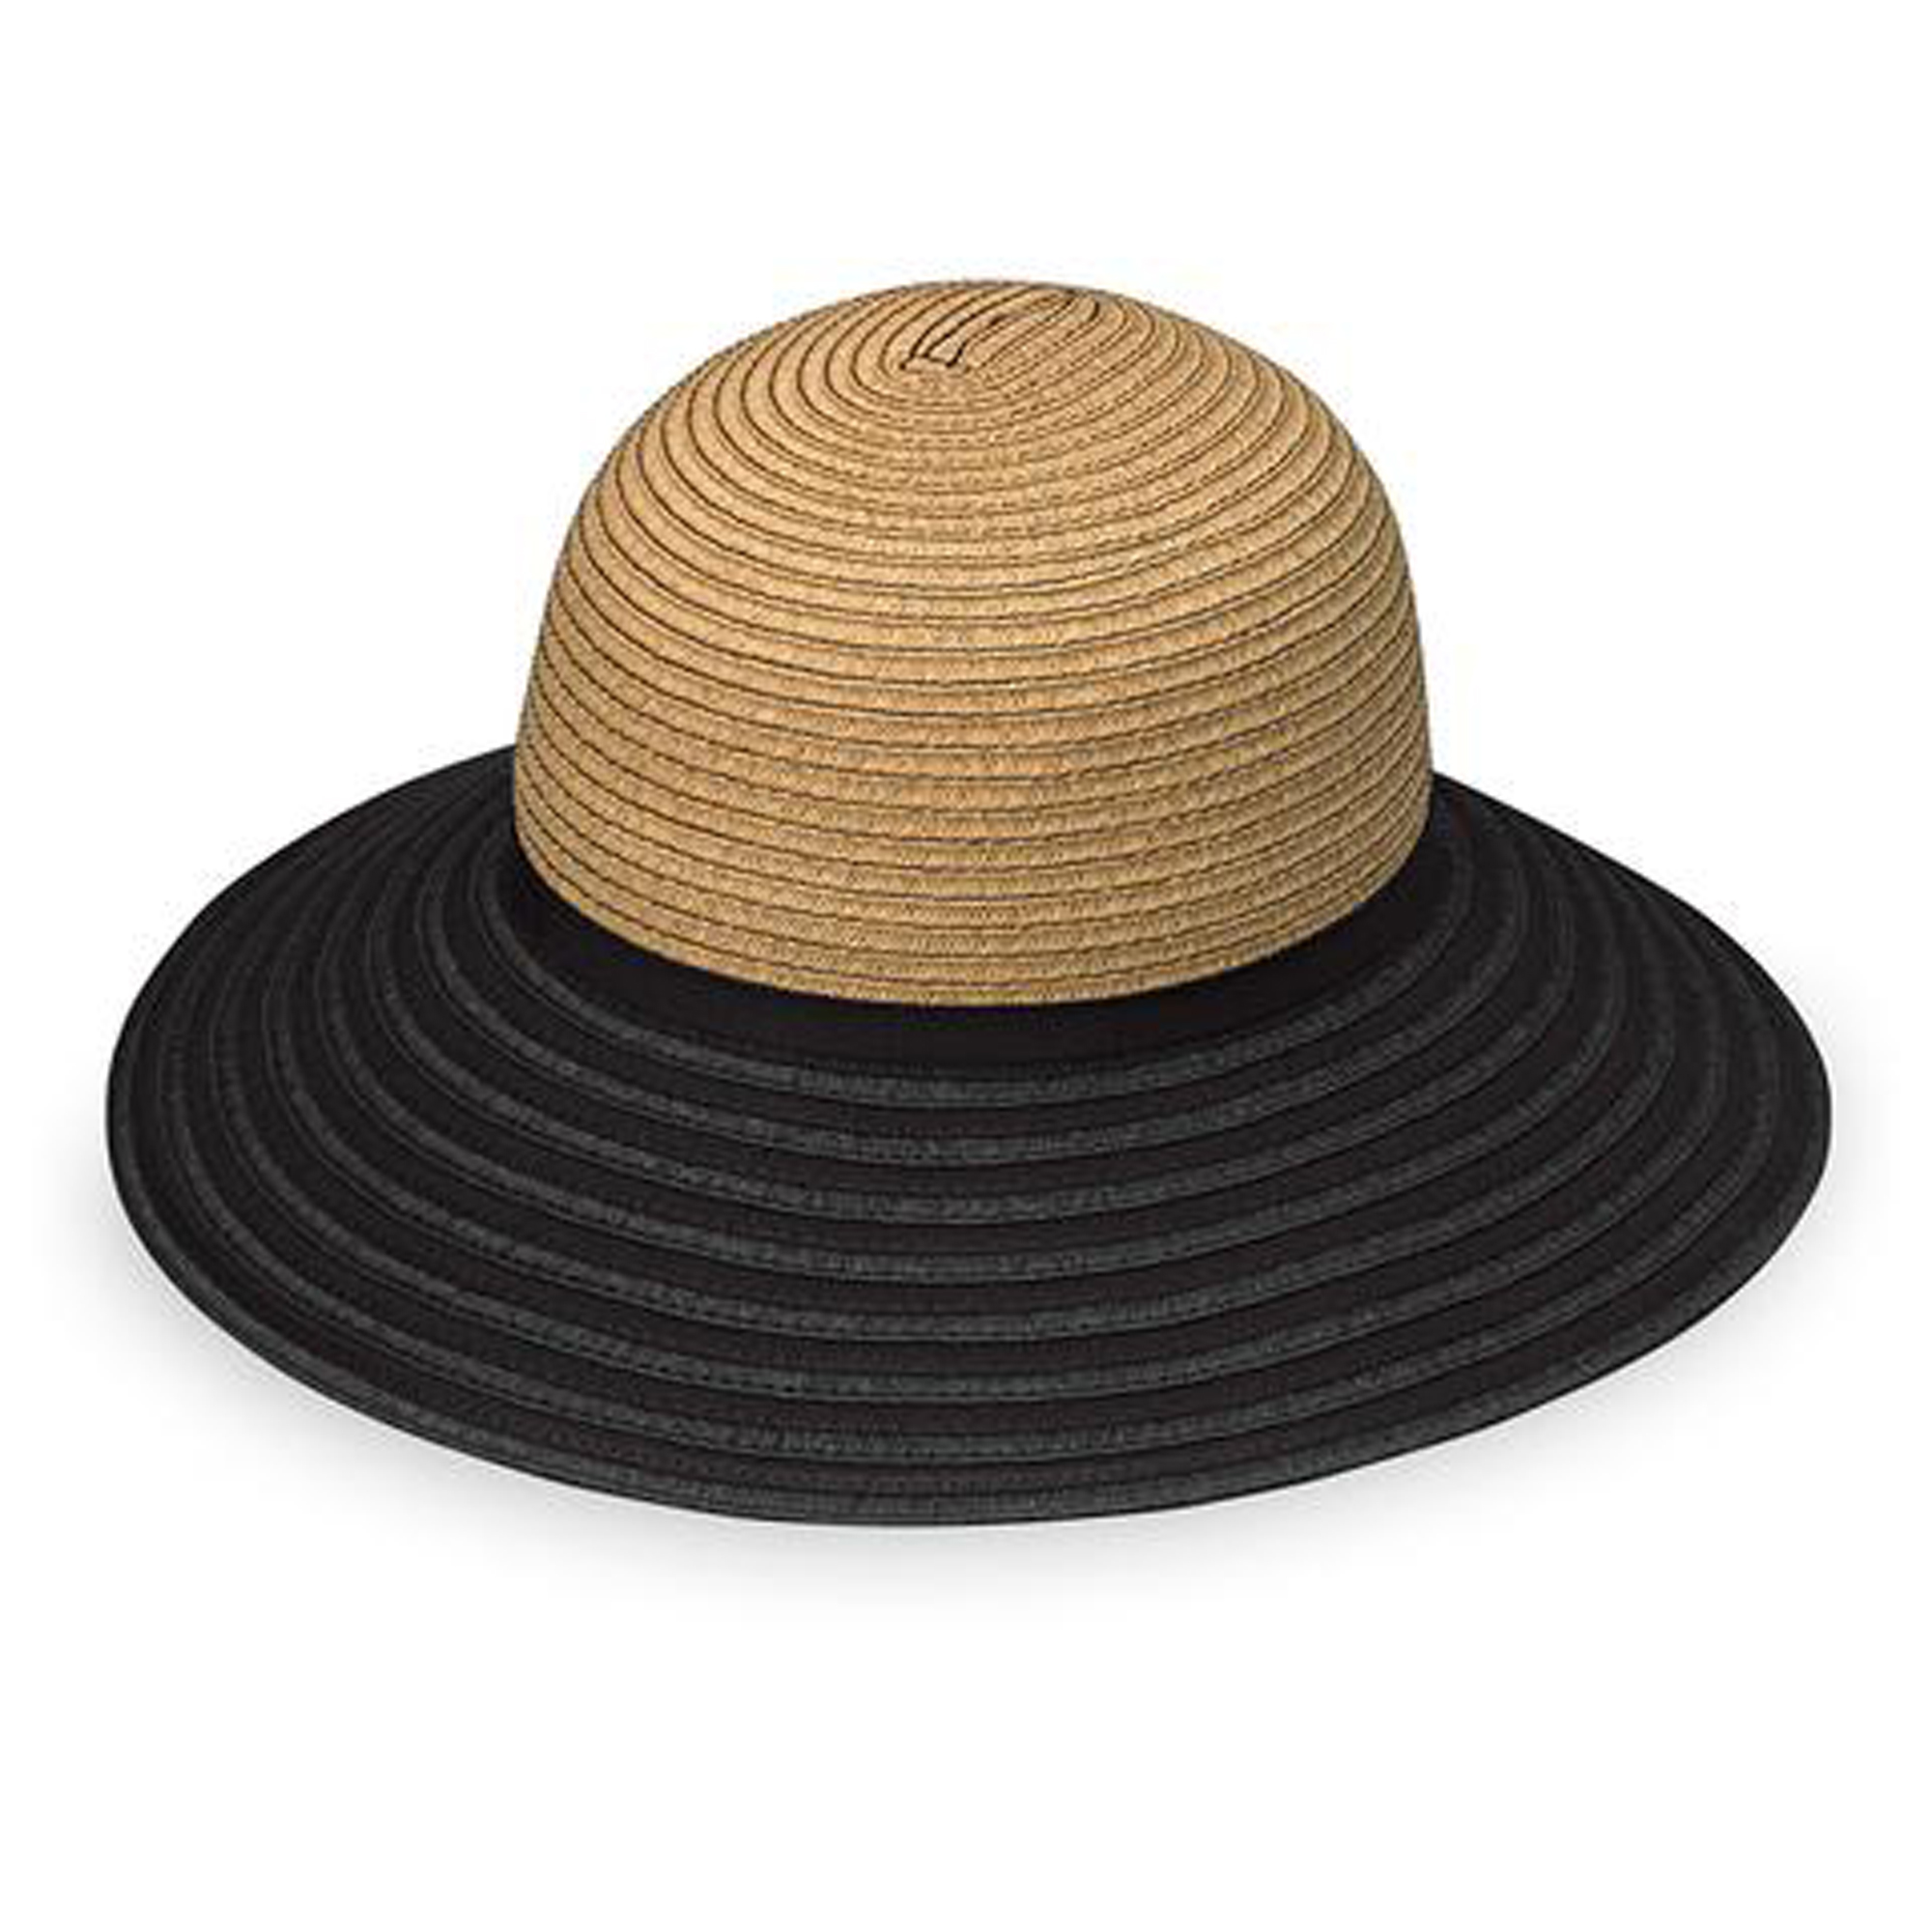 6d807a814c151 Rivera Wallaroo Hat